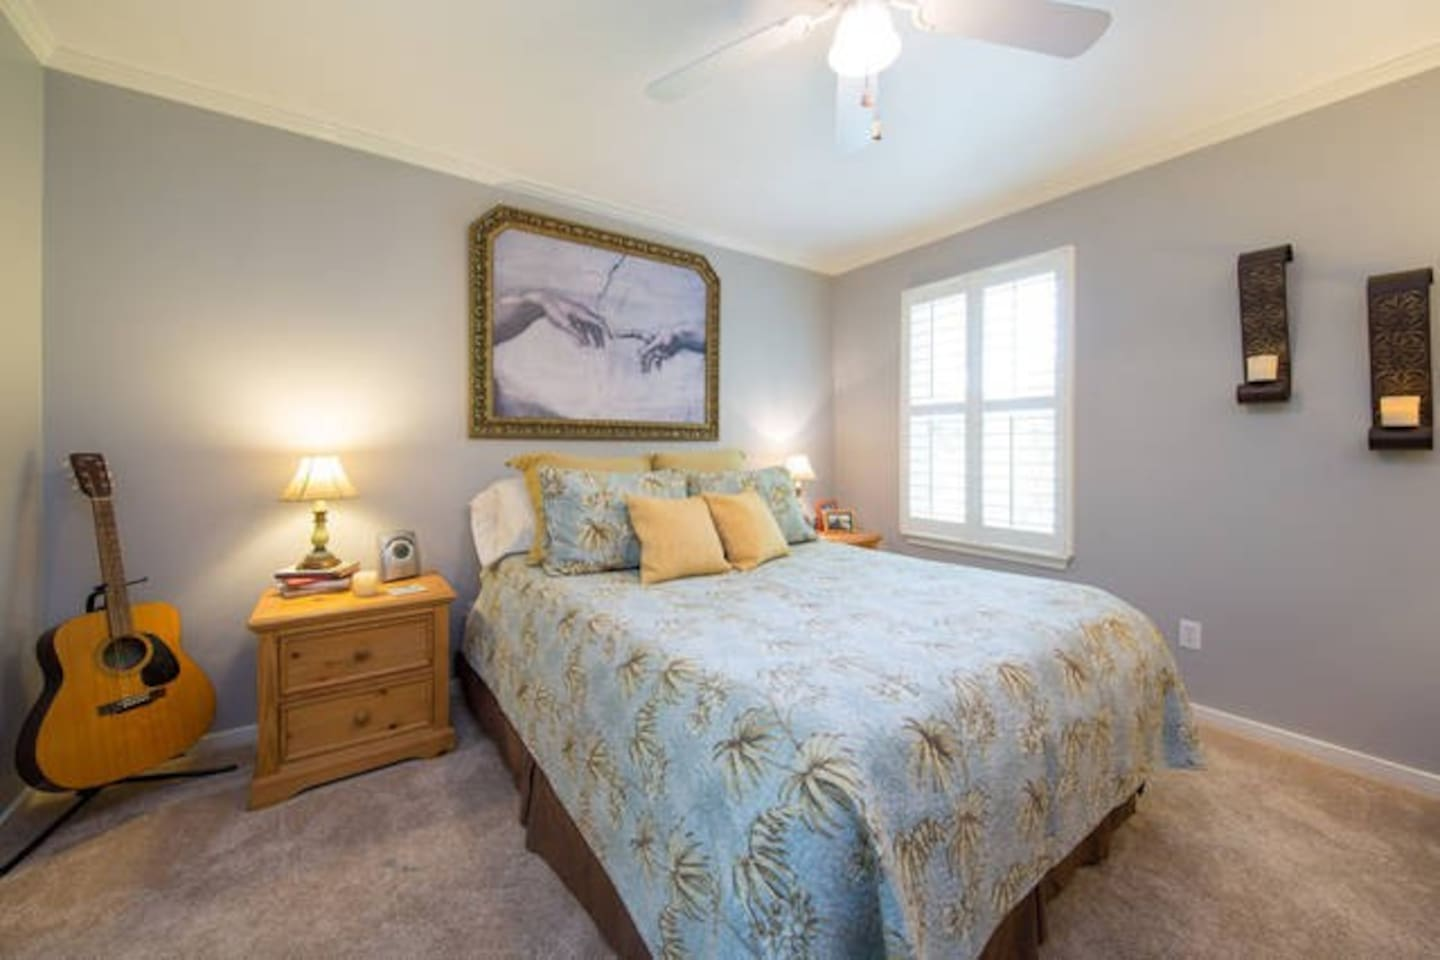 This is the master bedroom of the home,